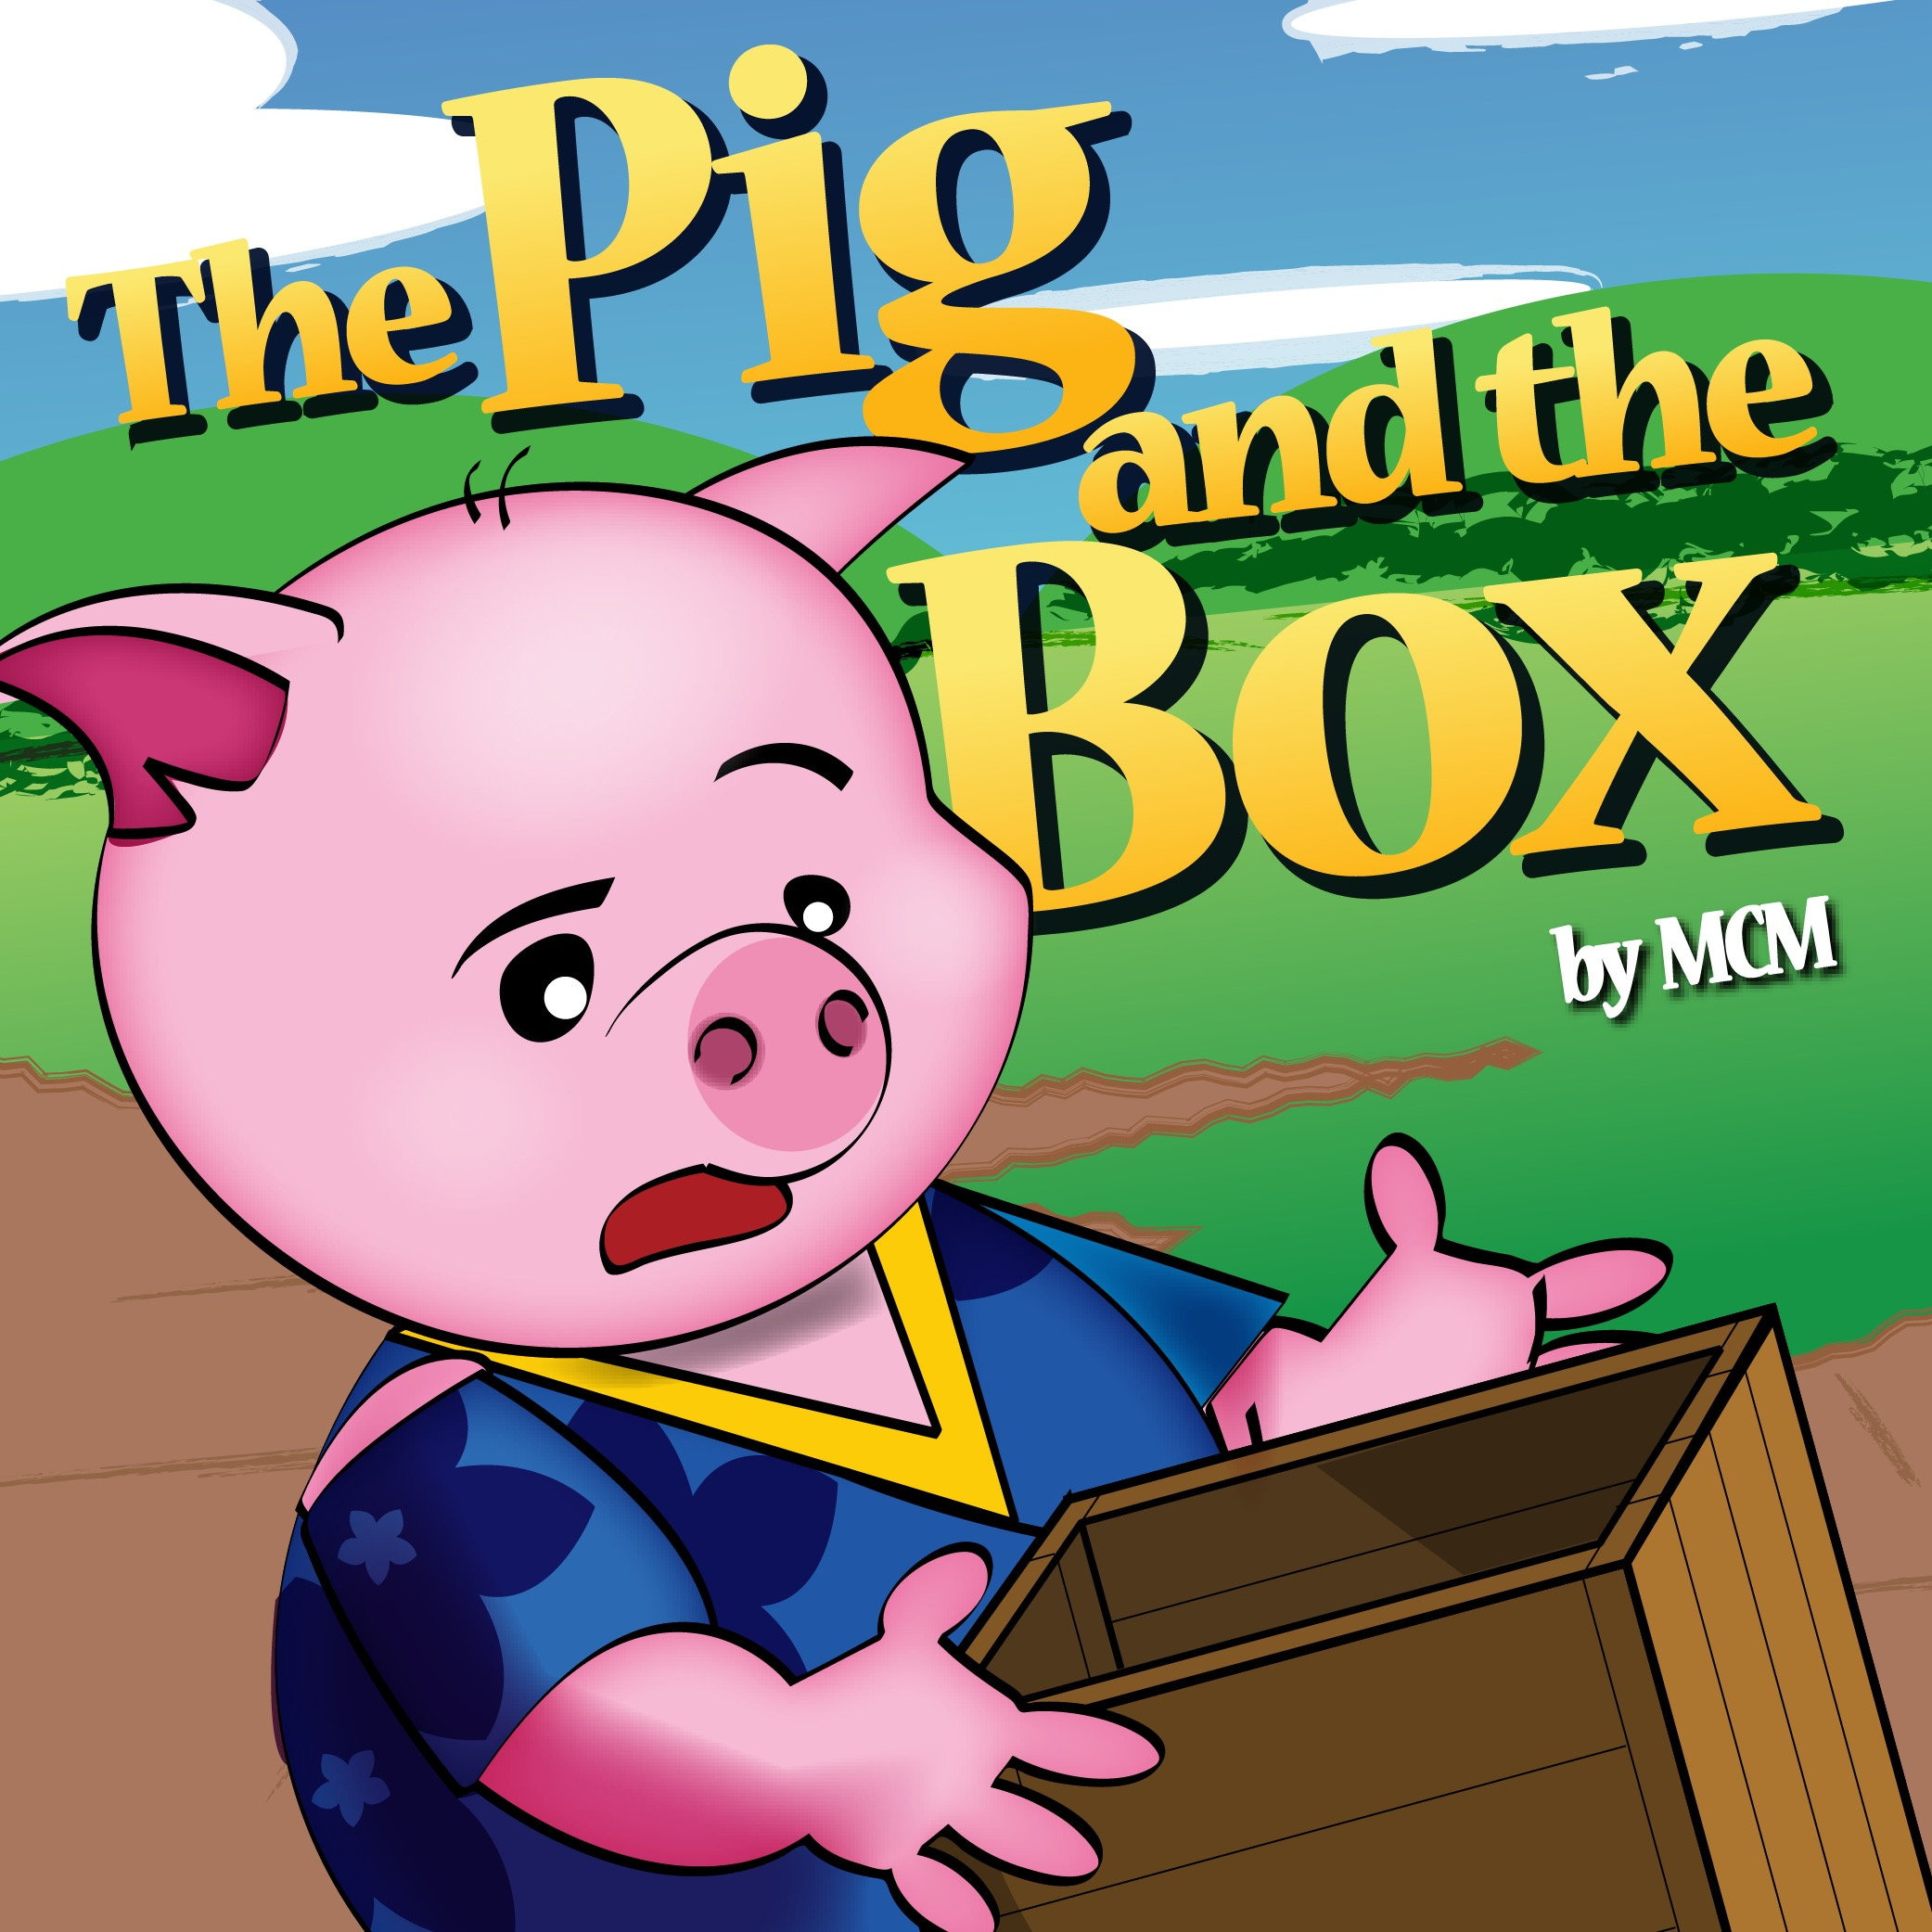 Pig and the Box The Movie!